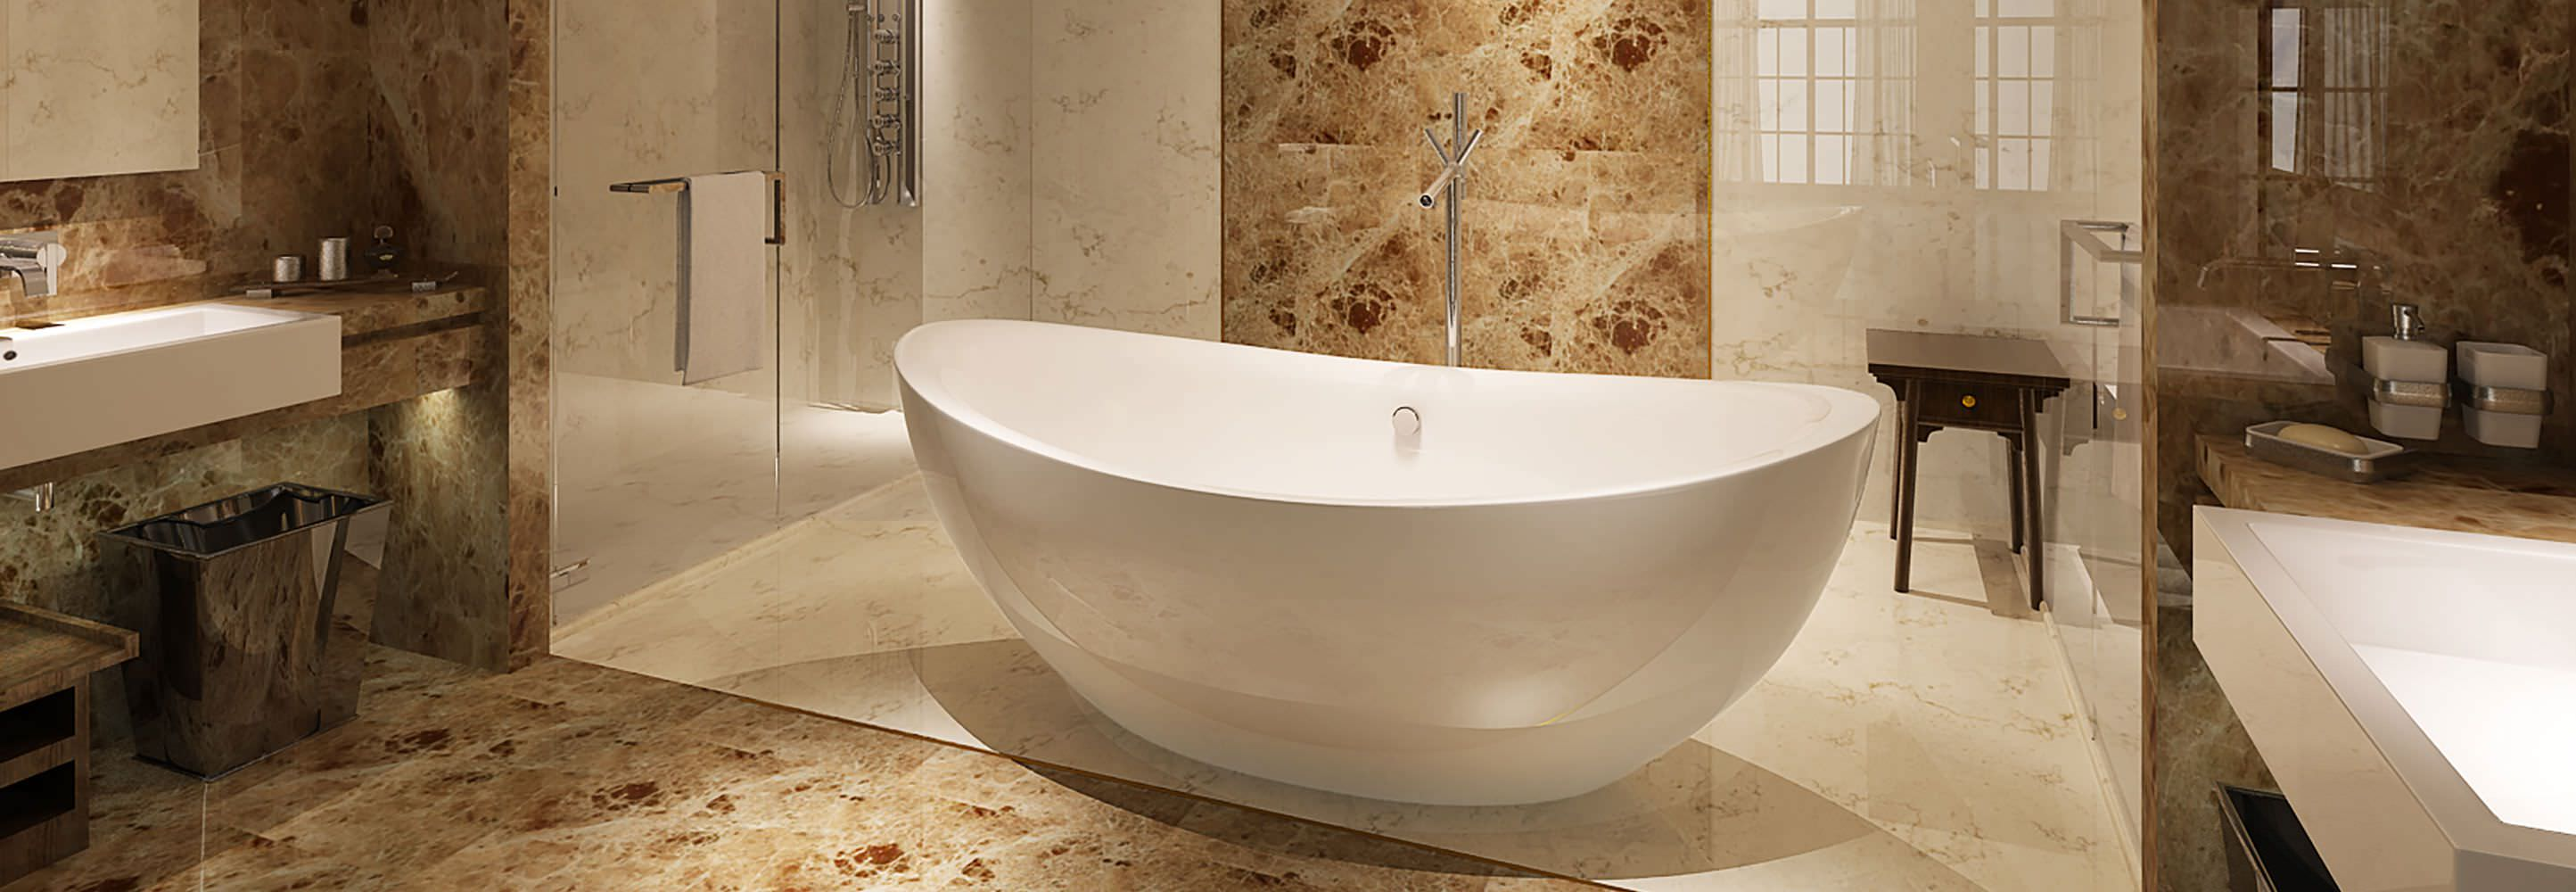 Baths - Freestanding Bathtubs - Tholos Bathtub - Kardiel